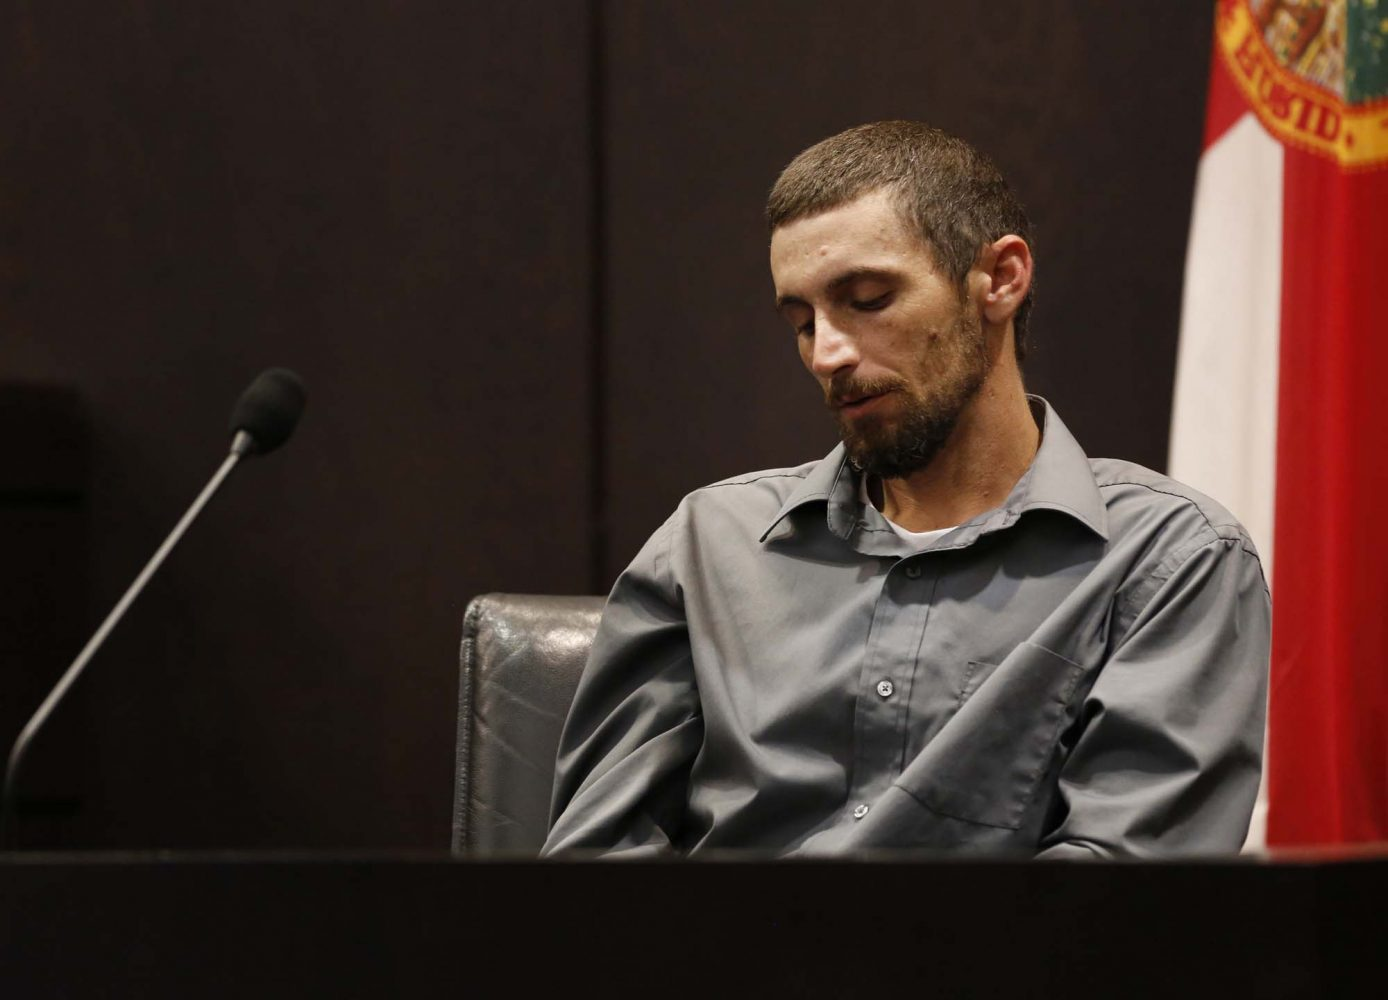 Levy County resident Jesse Everidge describes how he and his brother-in-law James Rains found the remains of Christian Aguilar while the two searched for jasmine vines in the Gulf Hammock Hunt Club during Bravo's murder trial in courtroom 1B of the Alachua County Criminal Justice Center Friday, August 8, 2014.  Bravo is accused of killing University of Florida student Christian Aguilar.  (Doug Finger/The Gainesville Sun/Pool)